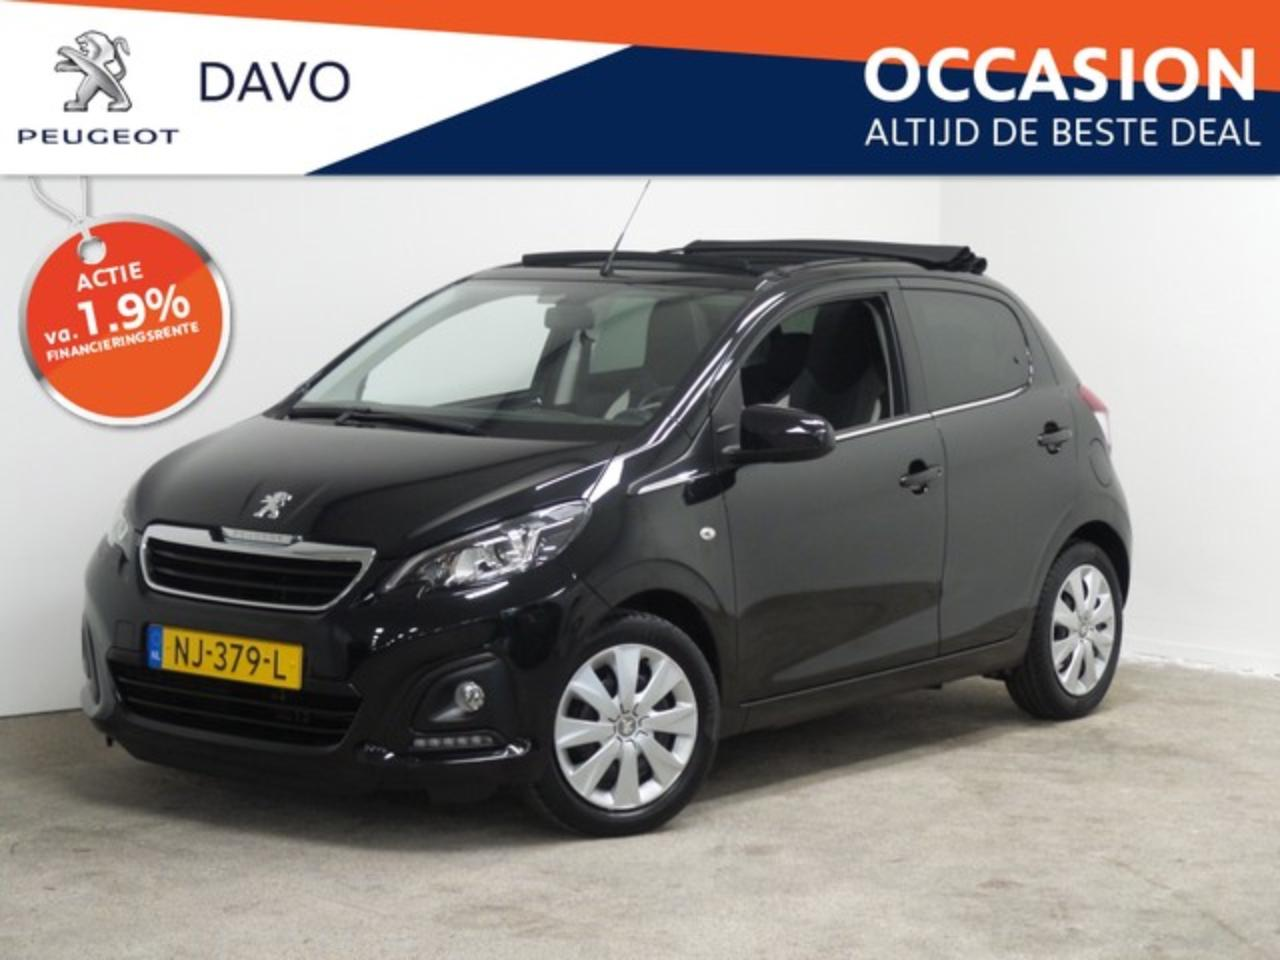 Peugeot 108 1.0 e-VTi Active TOP! Airconditioning - Cabriolet